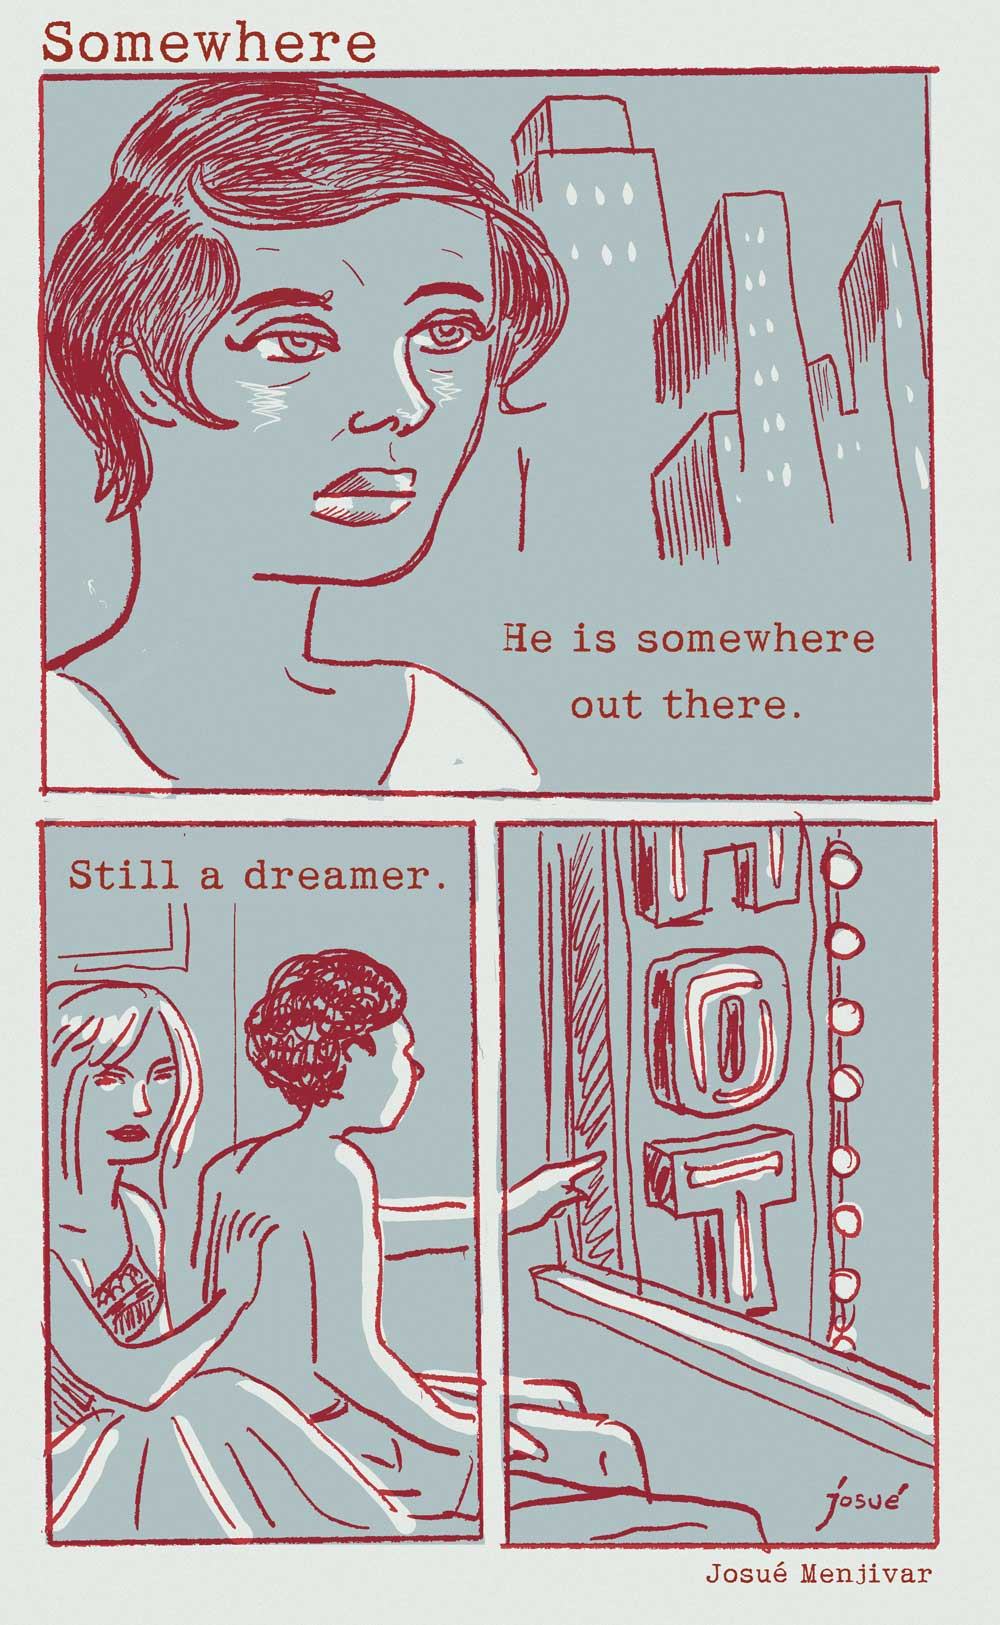 short comic story titled: Somewhere